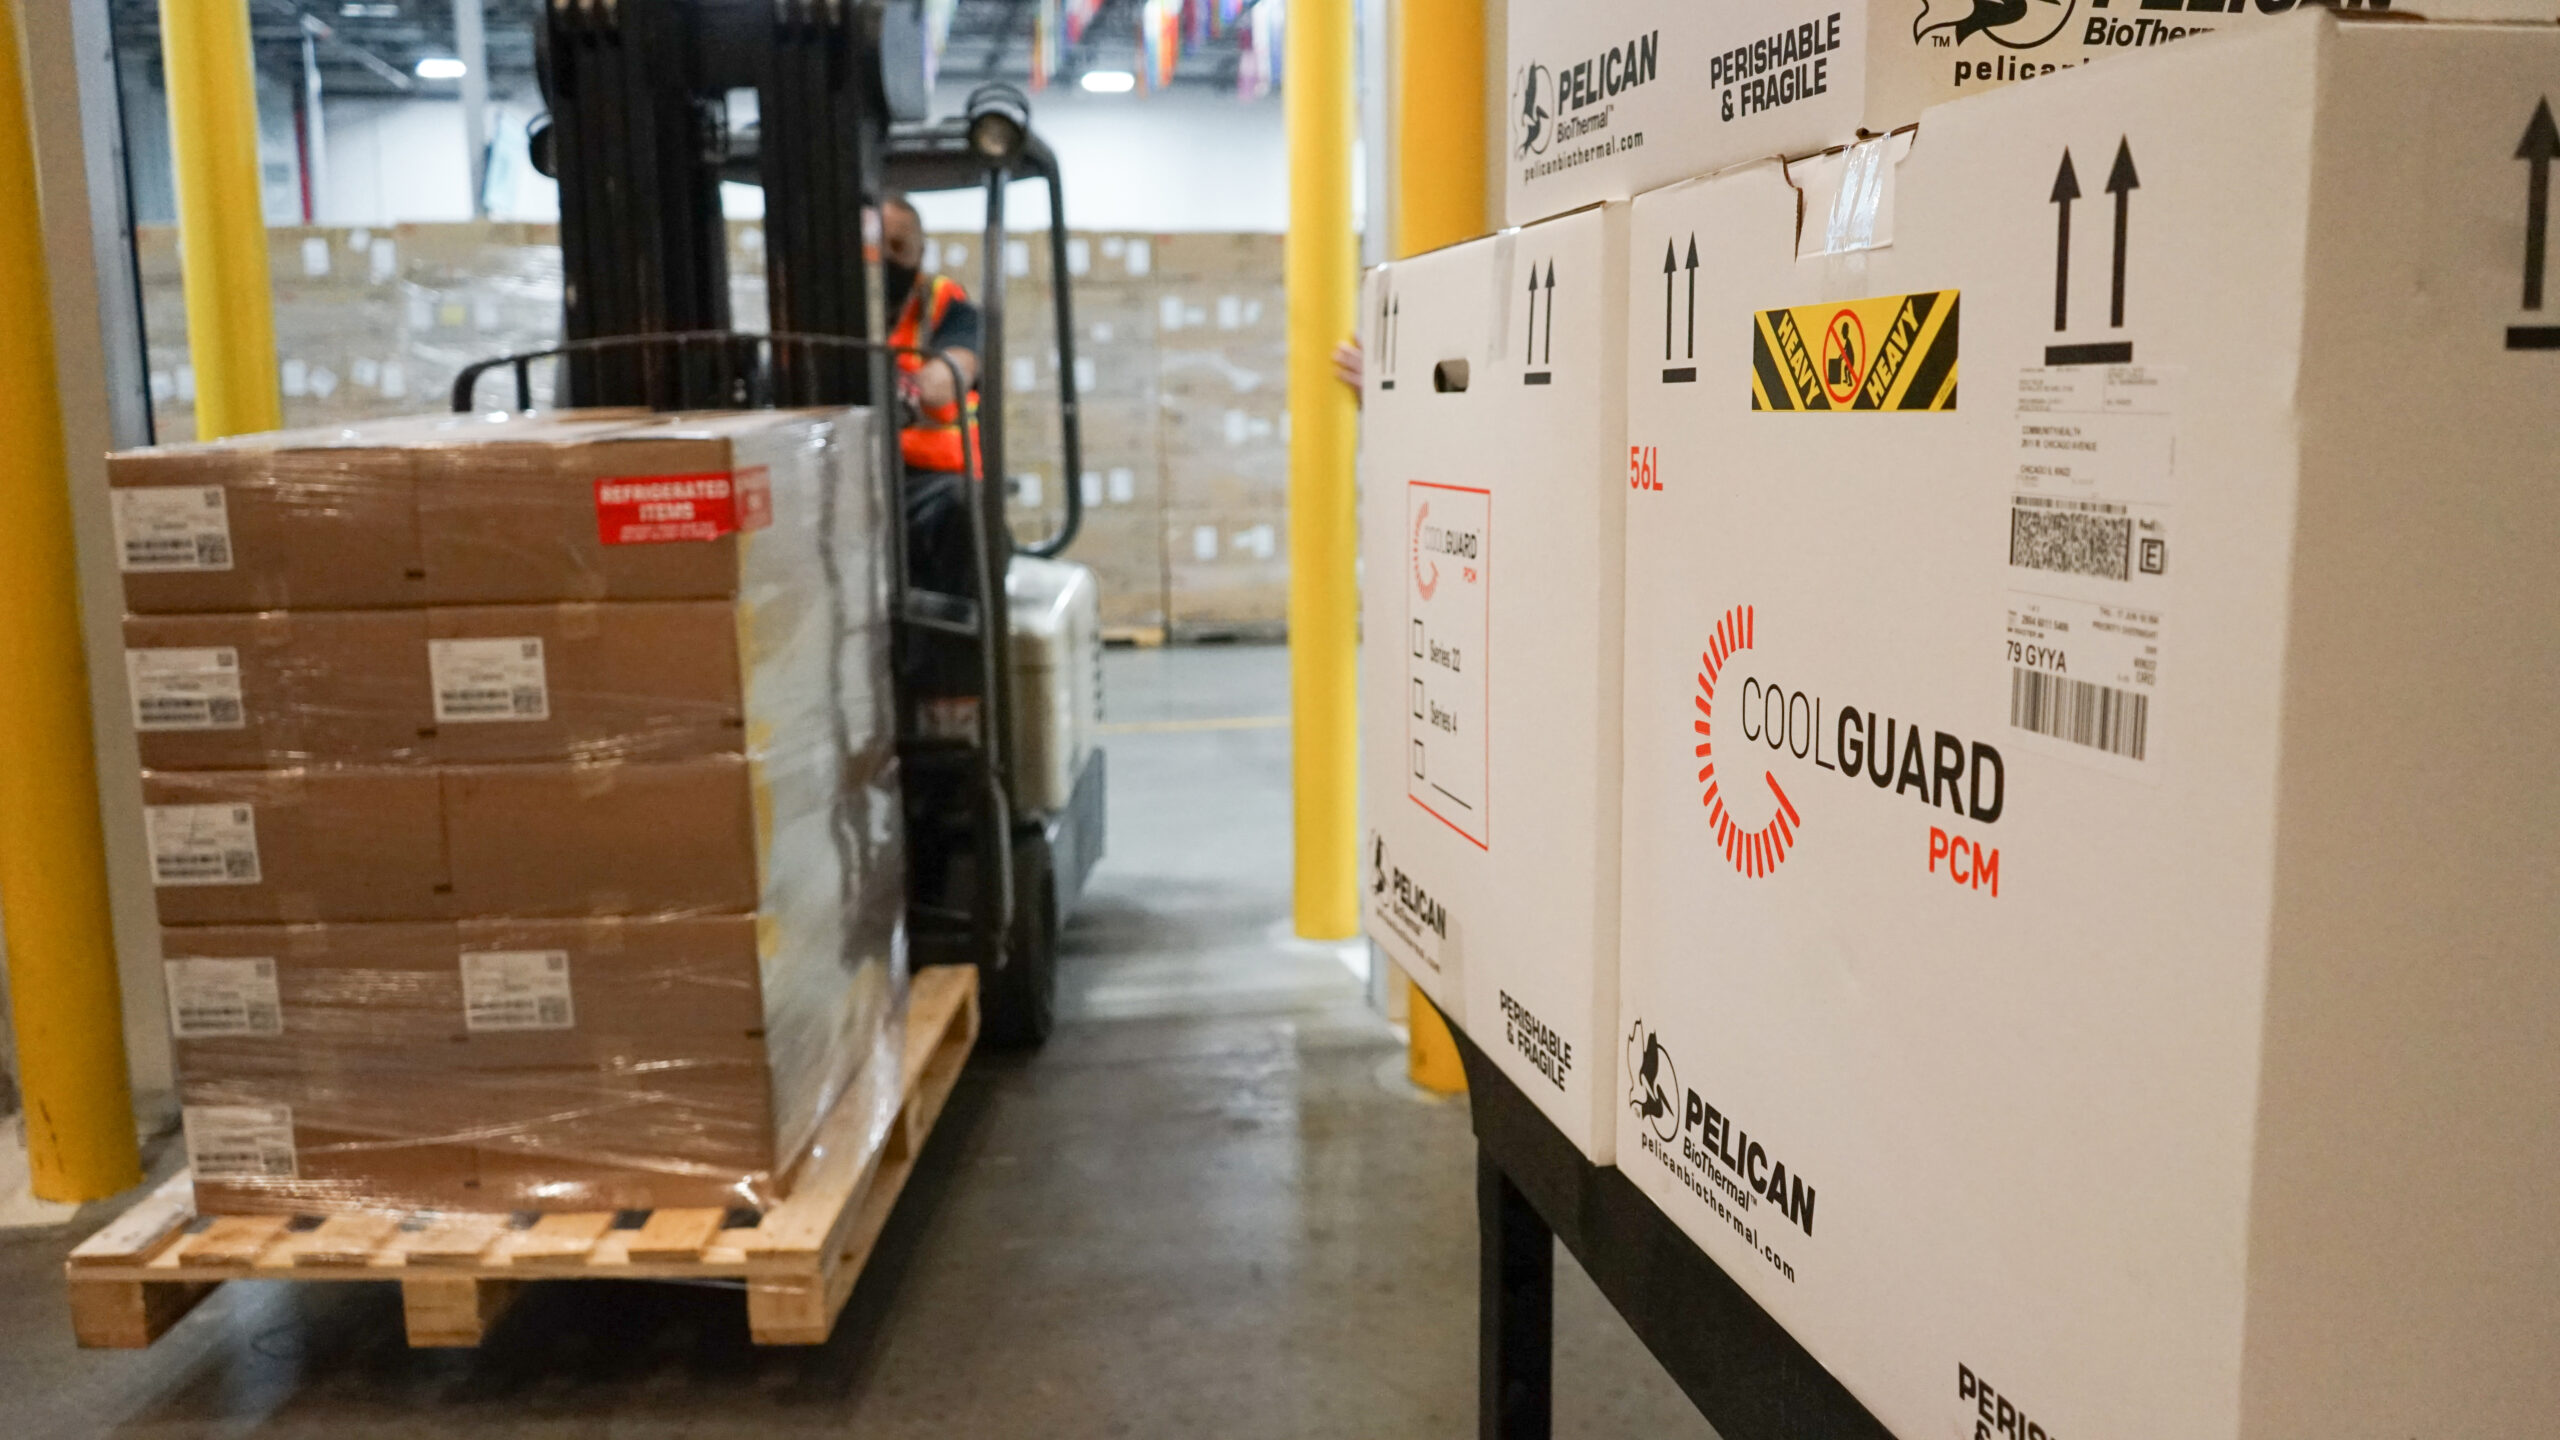 Temperature sensitive therapies are staged at Direct Relief's warehouse. (Lara Cooper/Direct Relief)